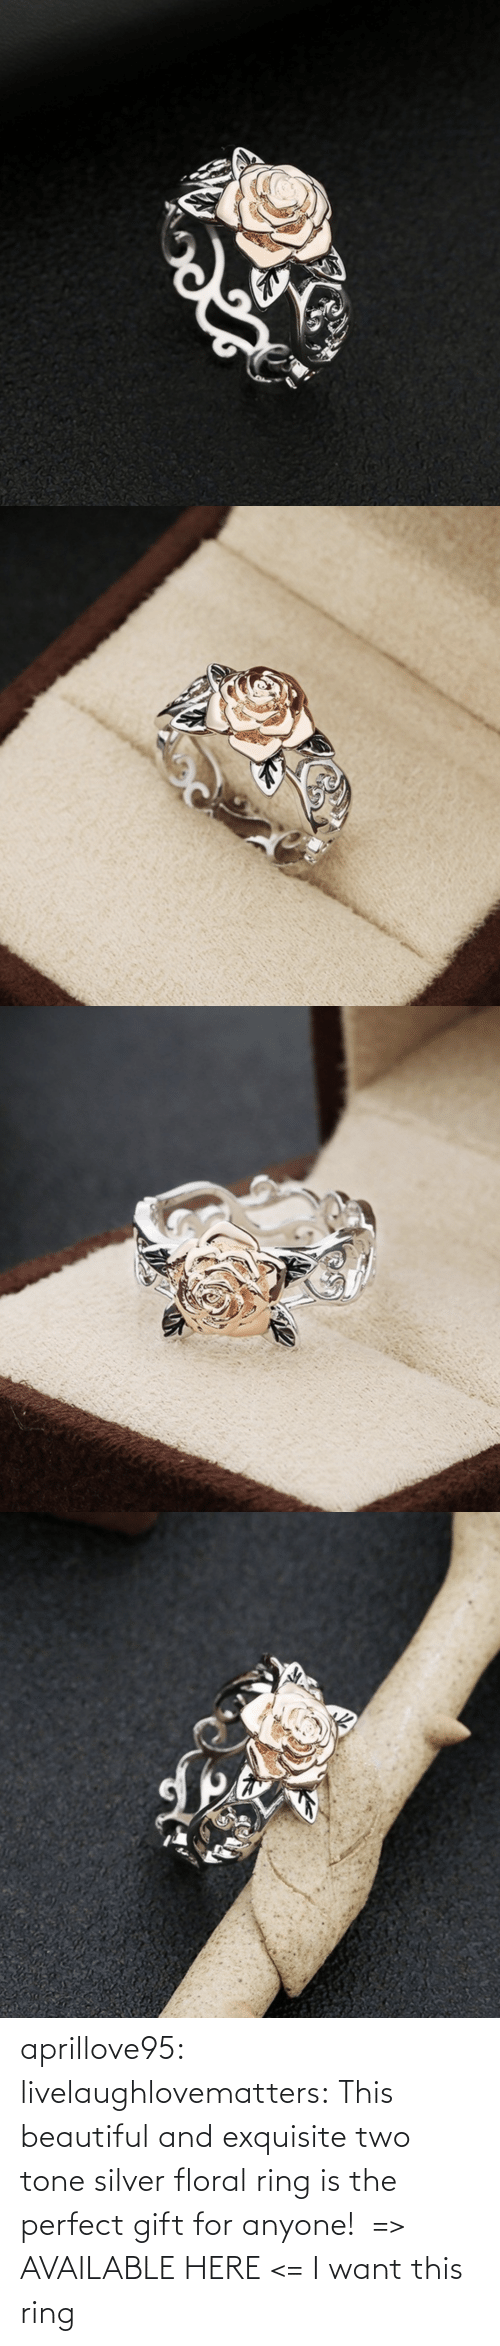 The Perfect: aprillove95:  livelaughlovematters:  This beautiful and exquisite two tone silver floral ring is the perfect gift for anyone!  => AVAILABLE HERE <=    I want this ring